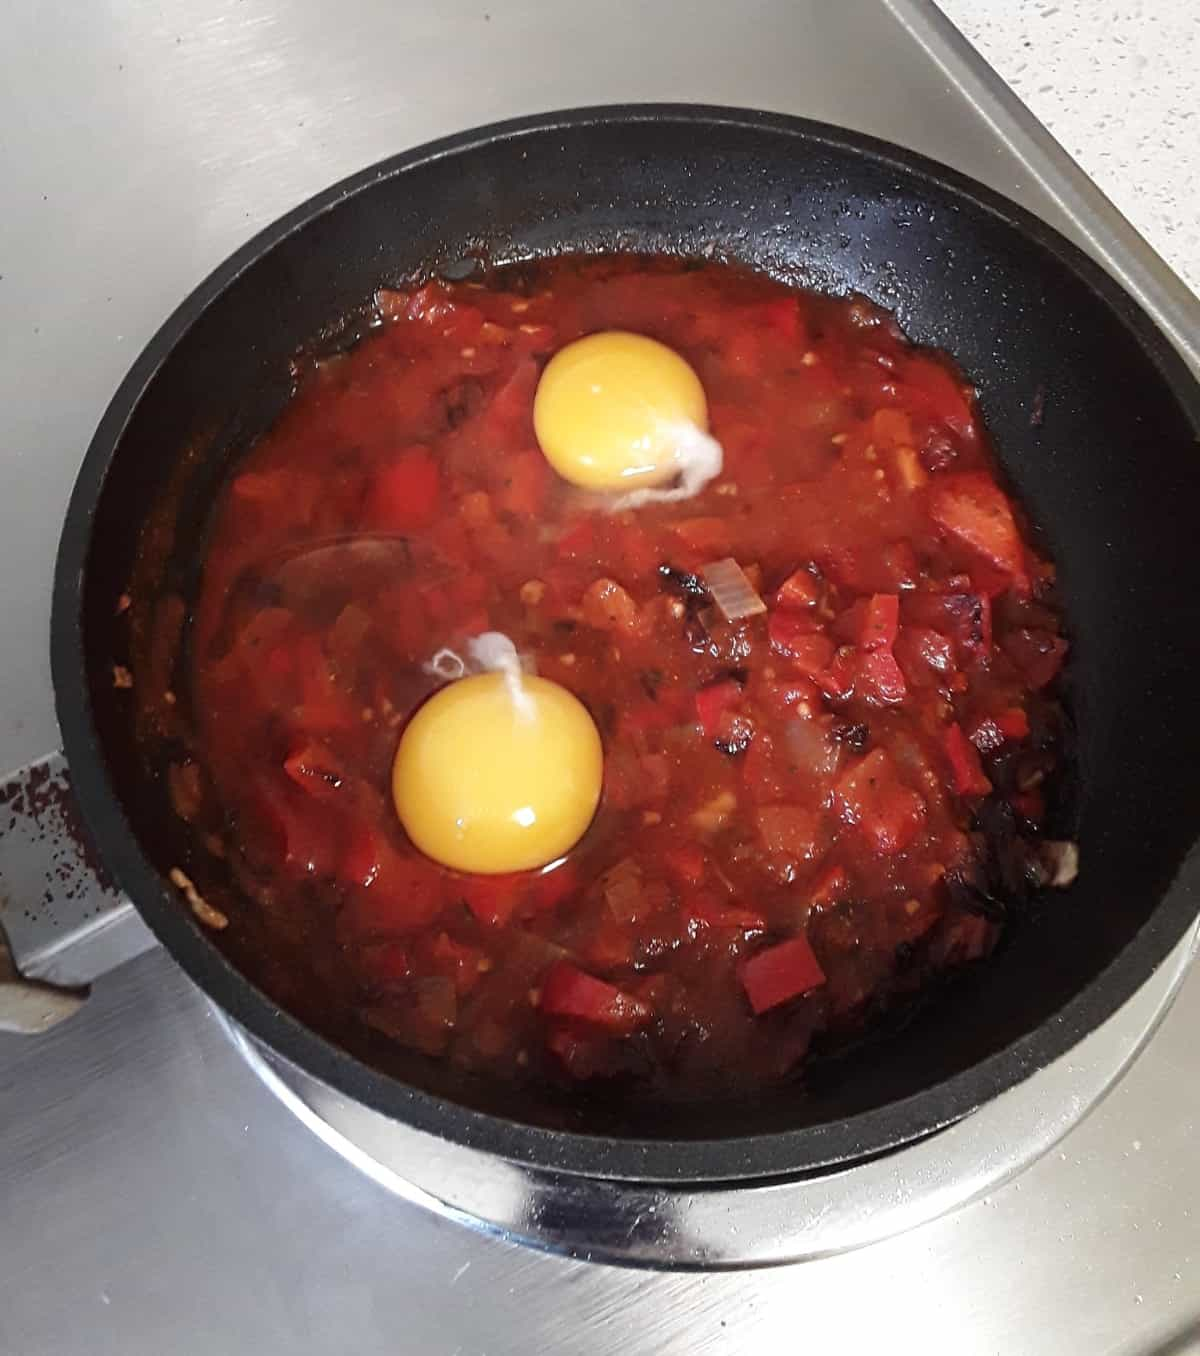 Cooking two eggs in skillet with marinara sauce.